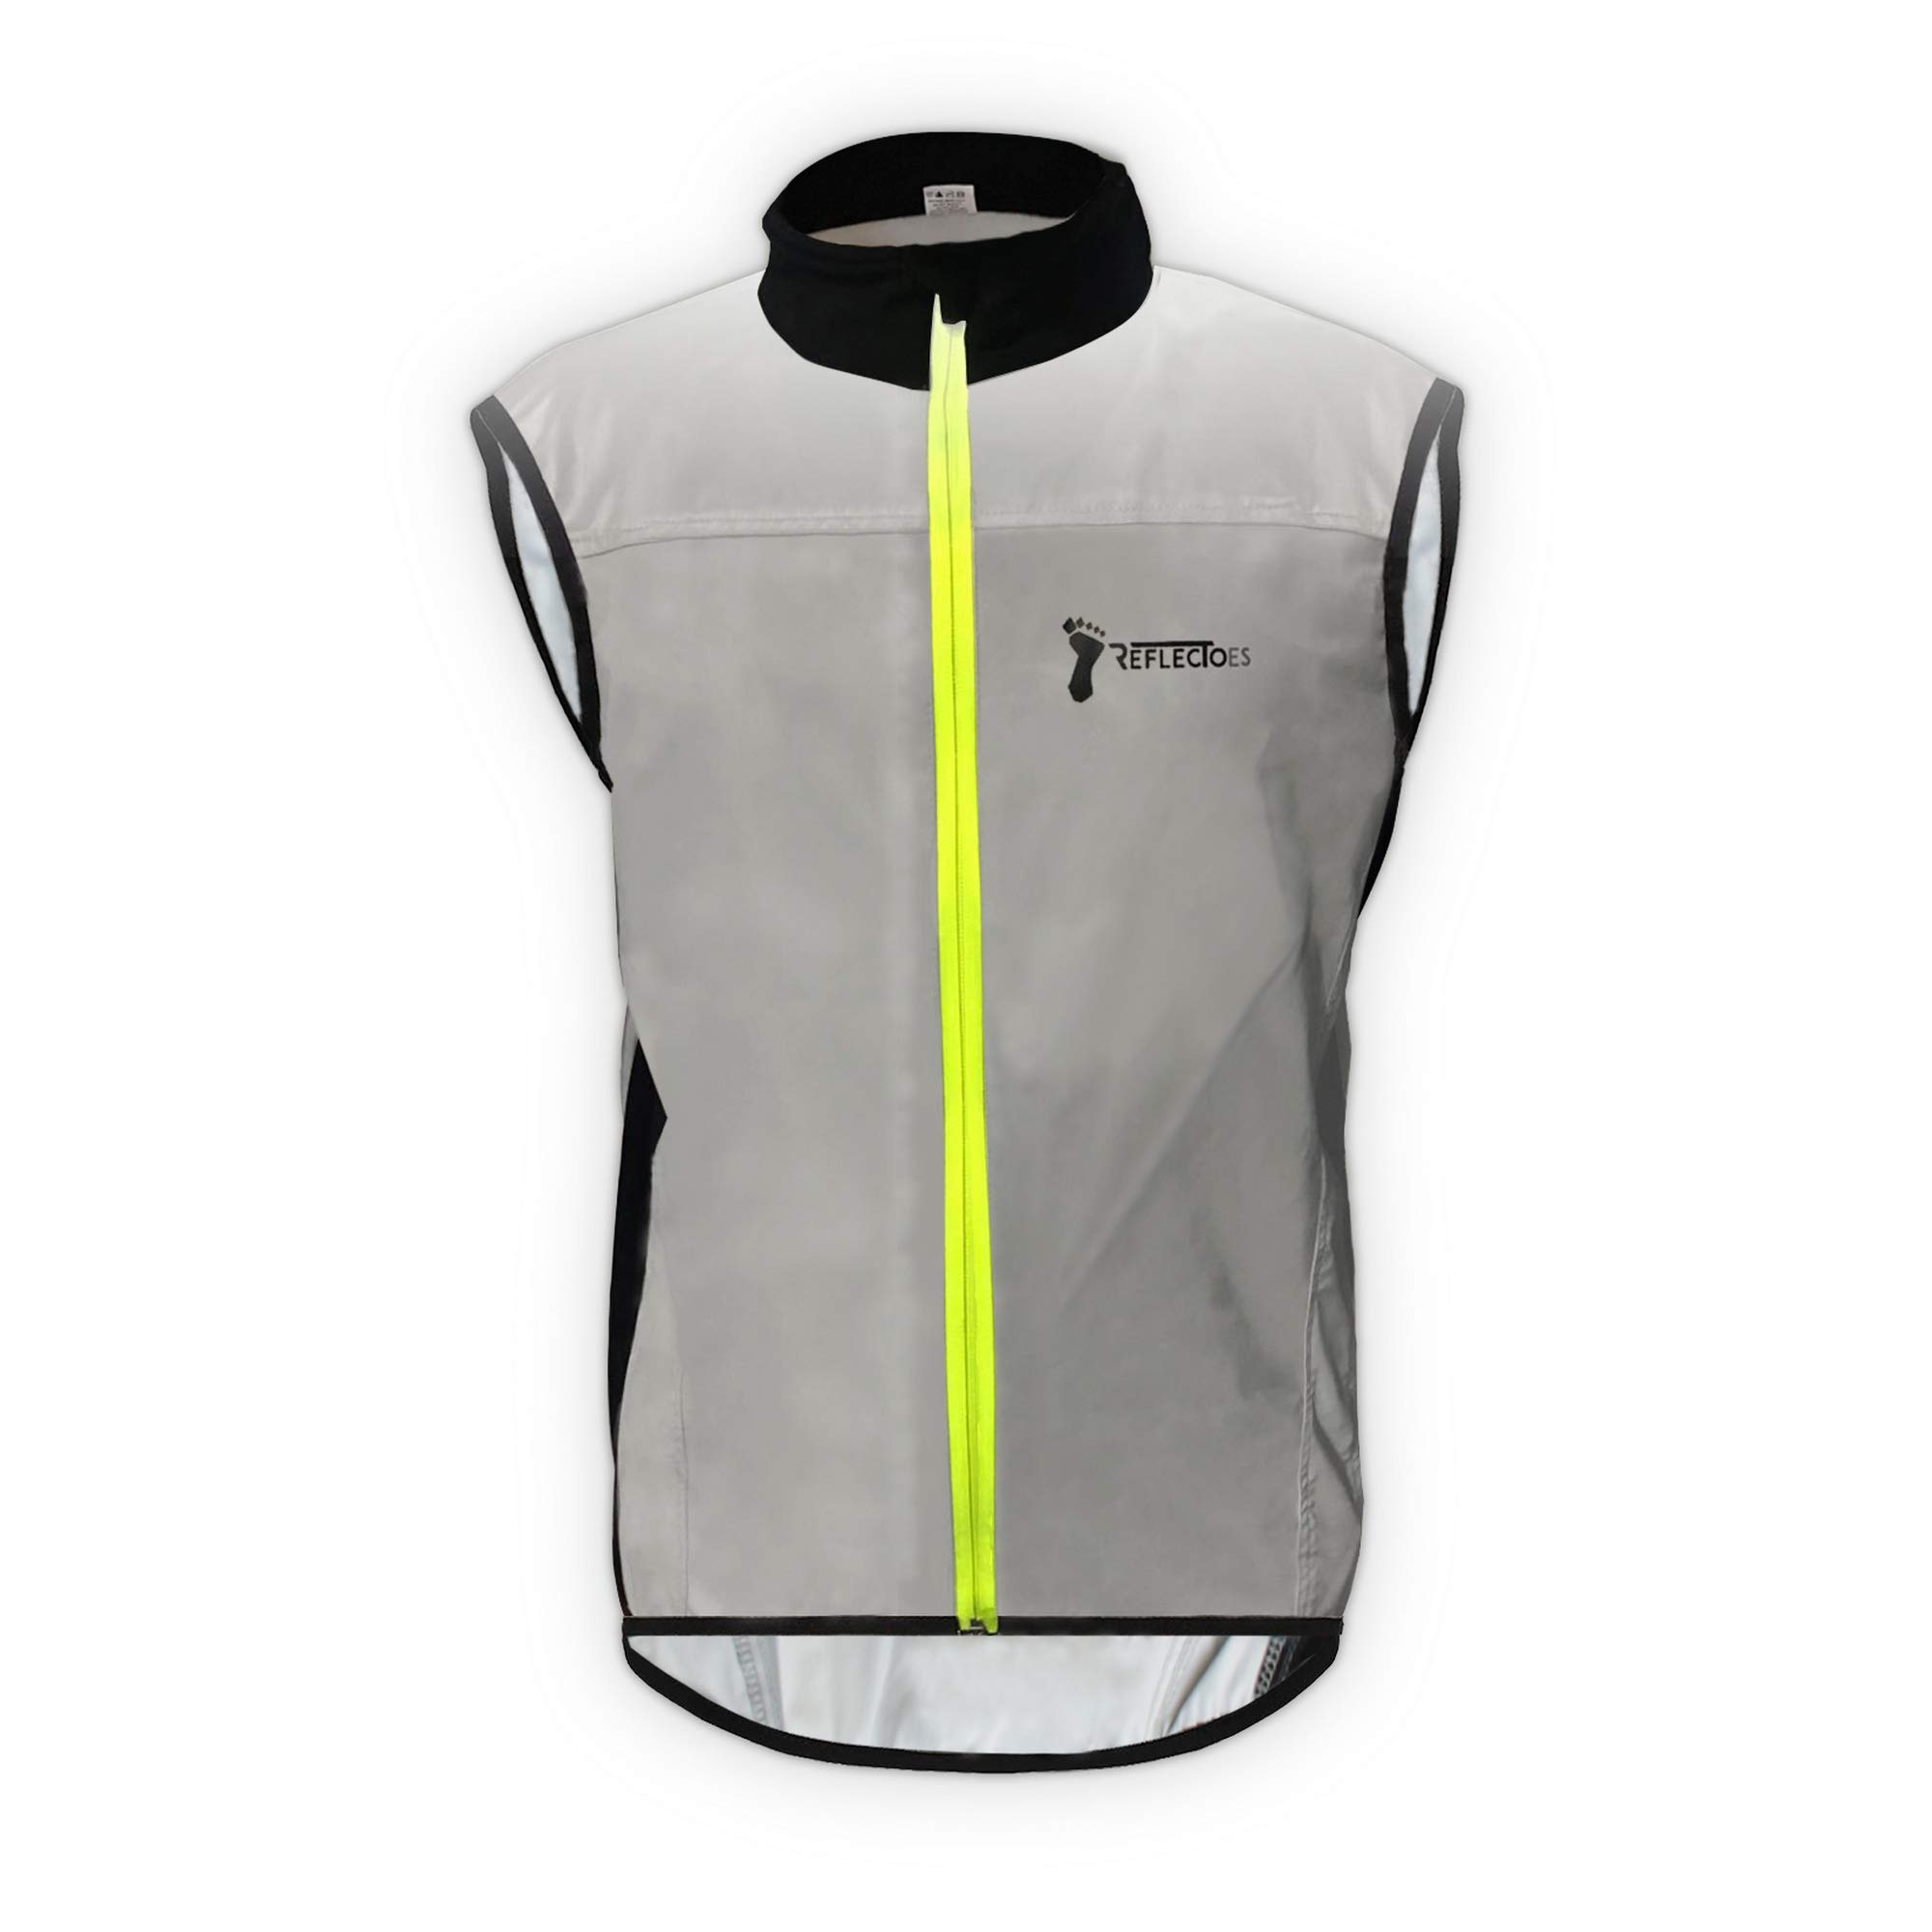 ReflecToes Reflective Windbreaker Vest for Running and Cycling. Lightweight and DurableMens Jacket Designed with Intelligent Stretch Fabric and BioMotion Technology for Maximum Visibility Medium